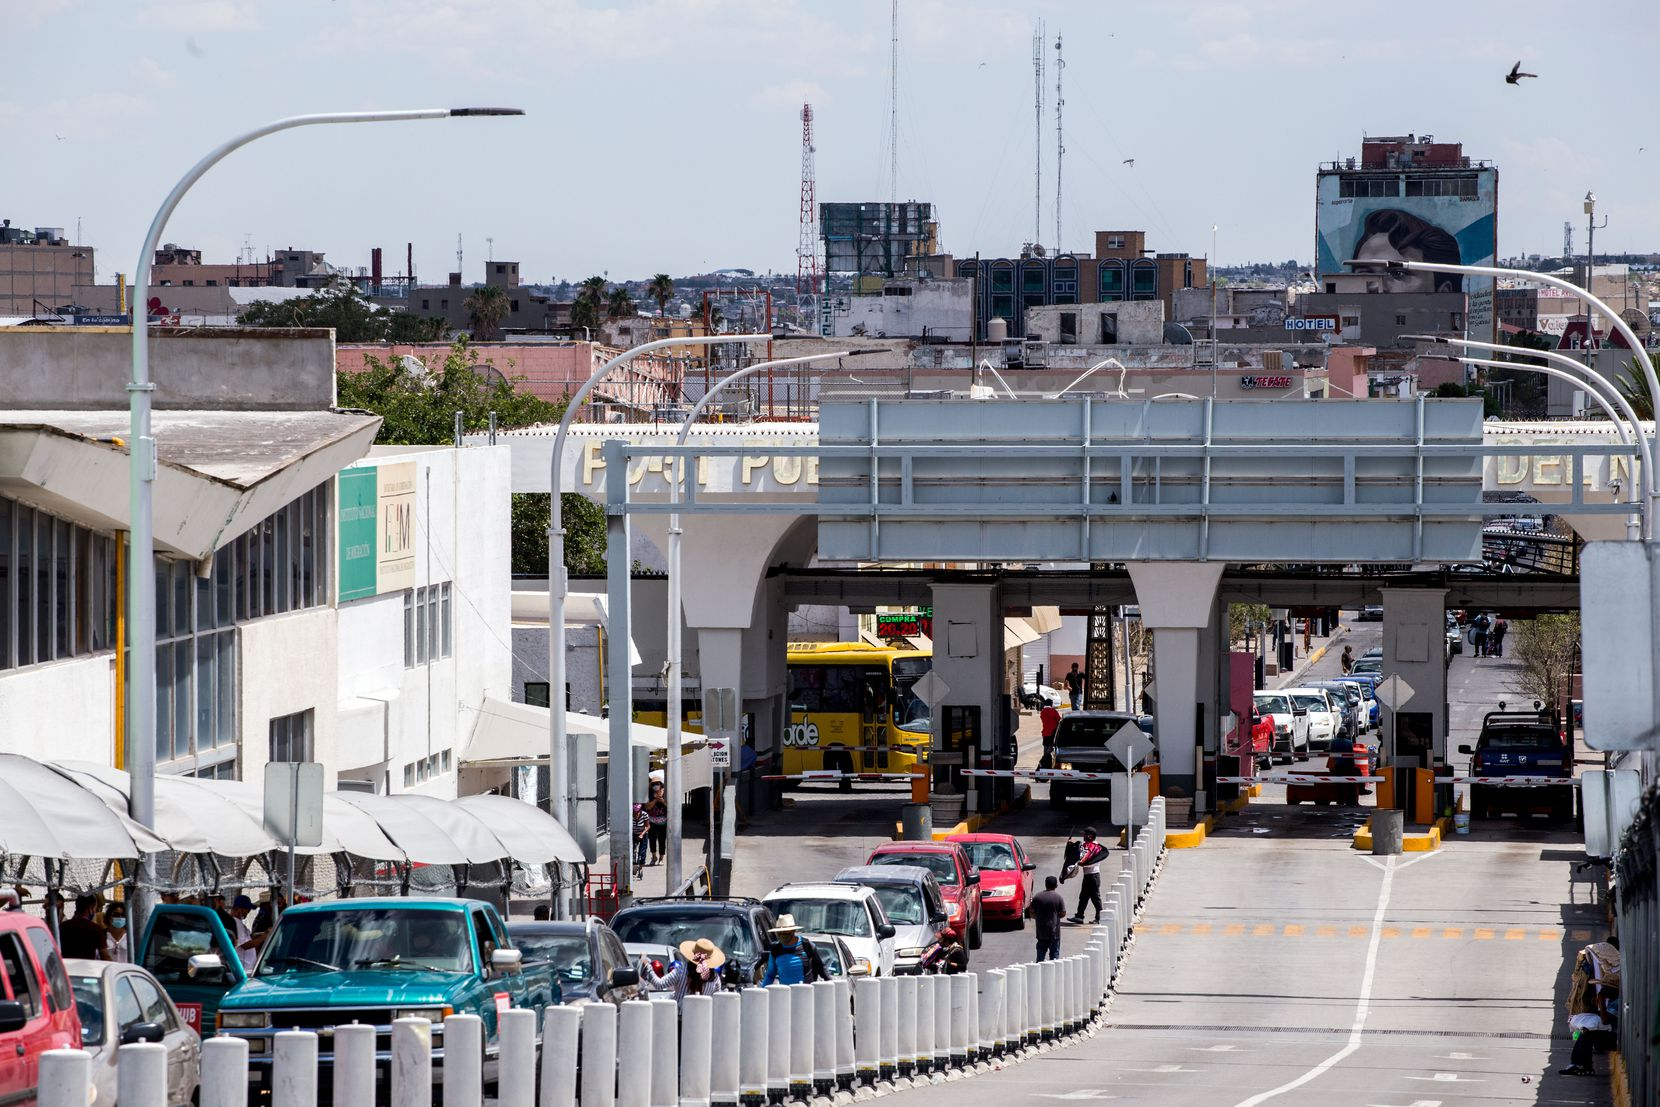 Vehicles wait in line to cross the border to El Paso, Texas through the Paso Del Norte Port of Entry in Ciudad Juarez, Chihuahua, Mexico, on Friday, June, 26, 2020. Majority of the vehicles waiting in line had Texas license plates. (Joel Angel Juarez/Special Contributor)